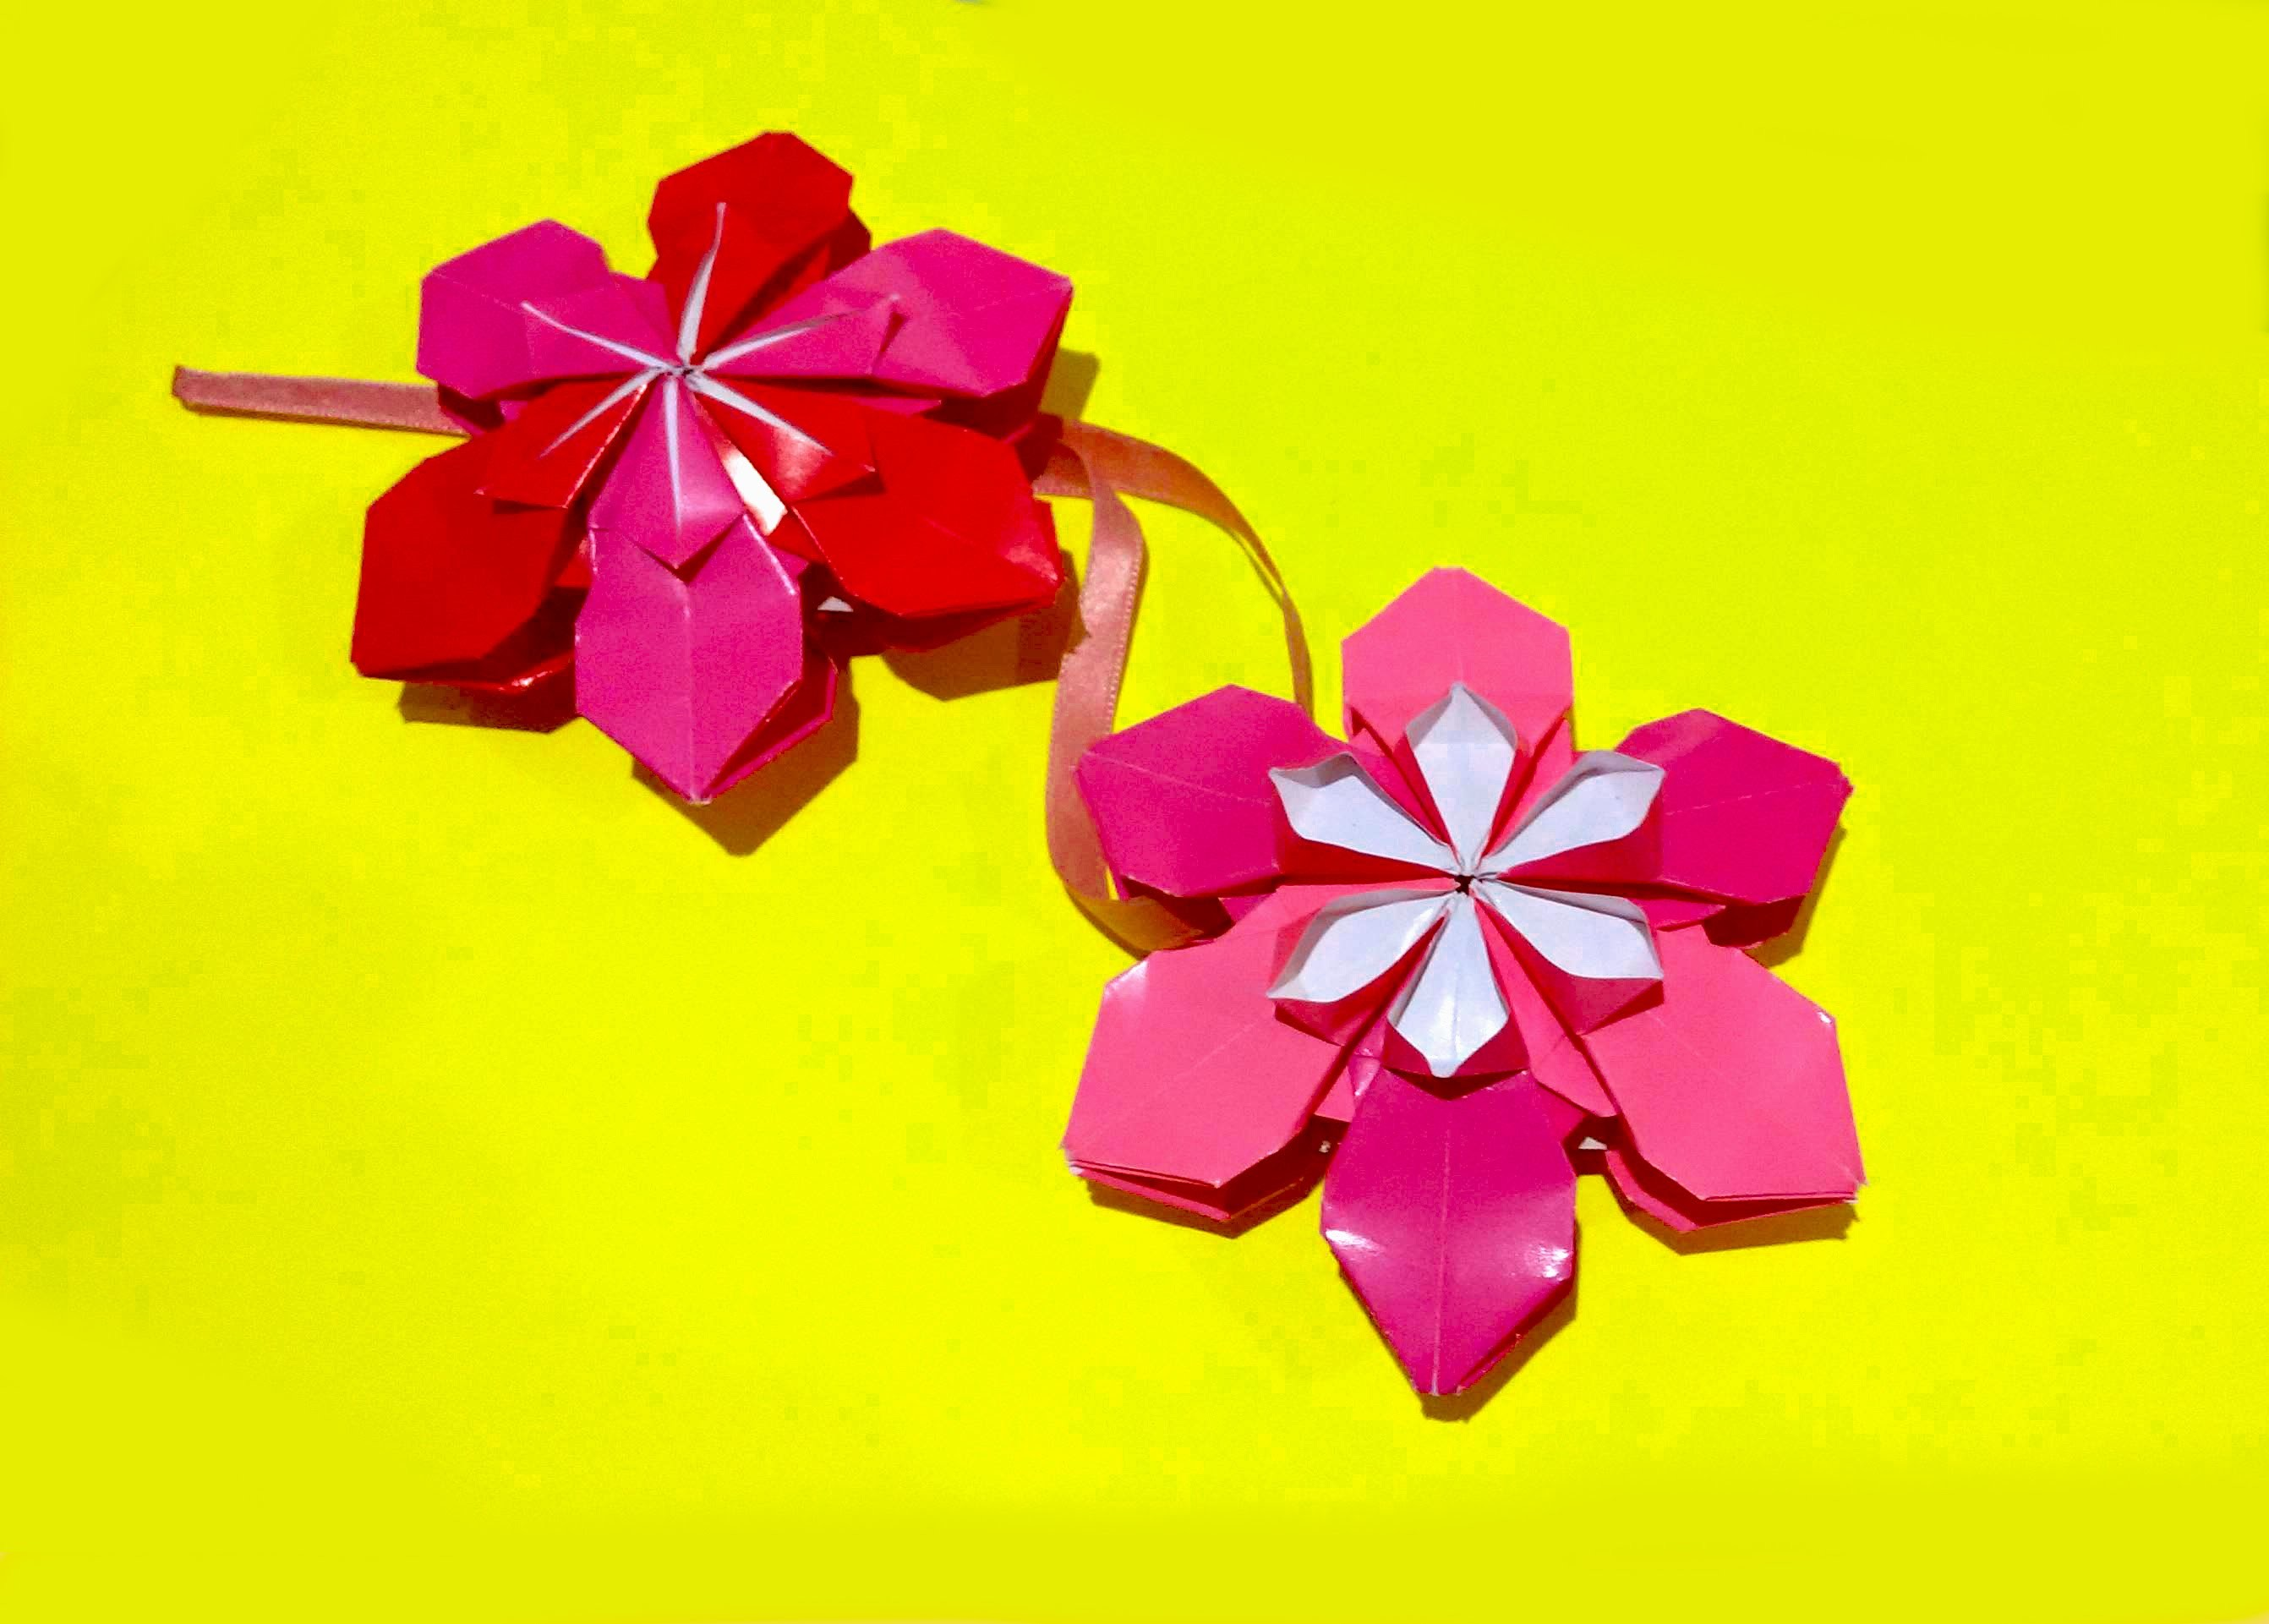 Origami flower ornament. DIY house decor. Amazing DIY necklace.